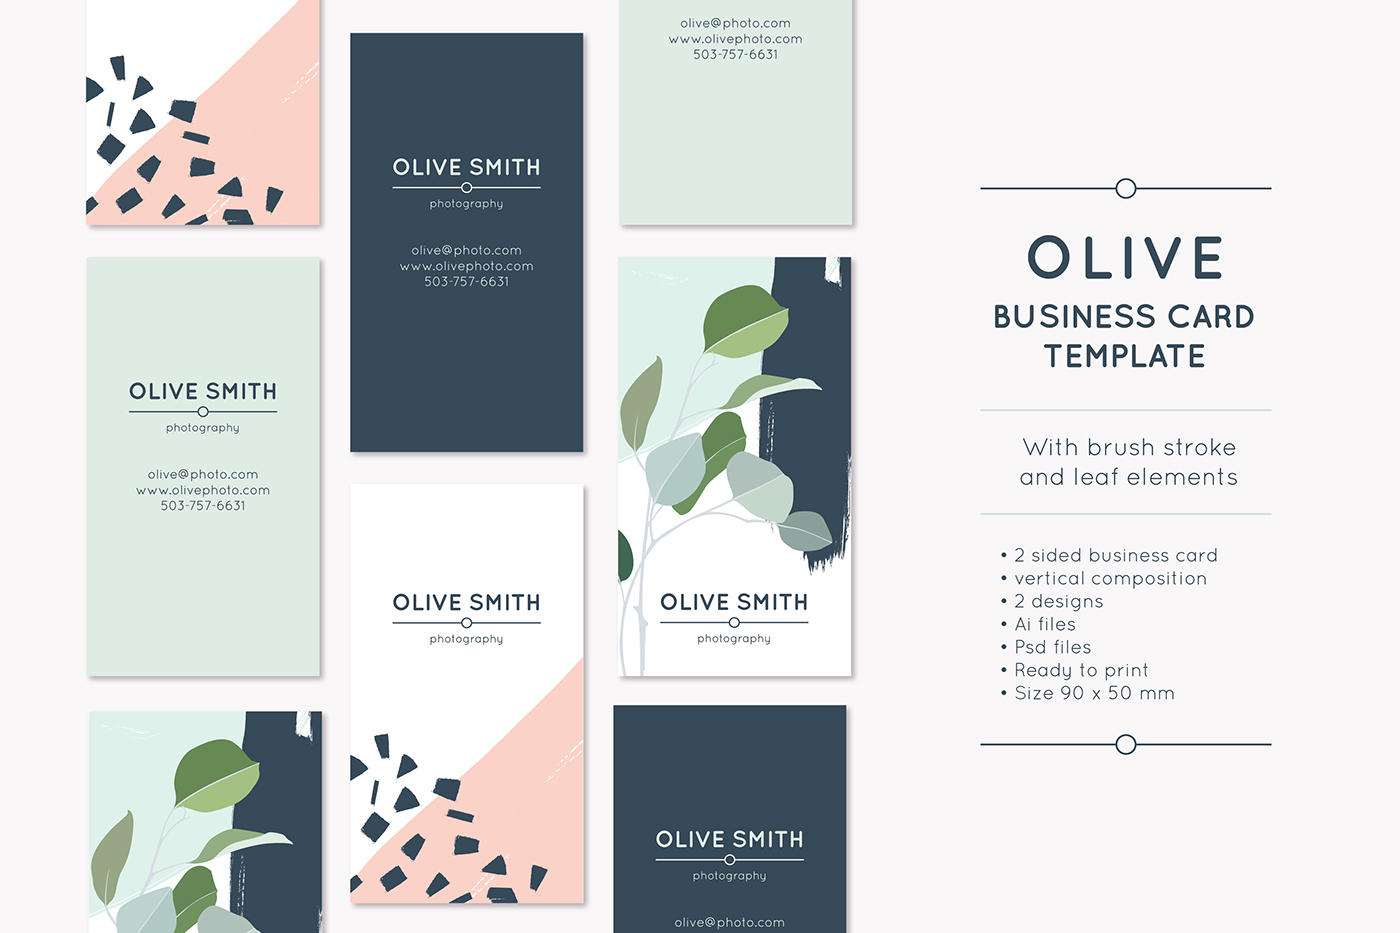 OLIVE business card template on Behance